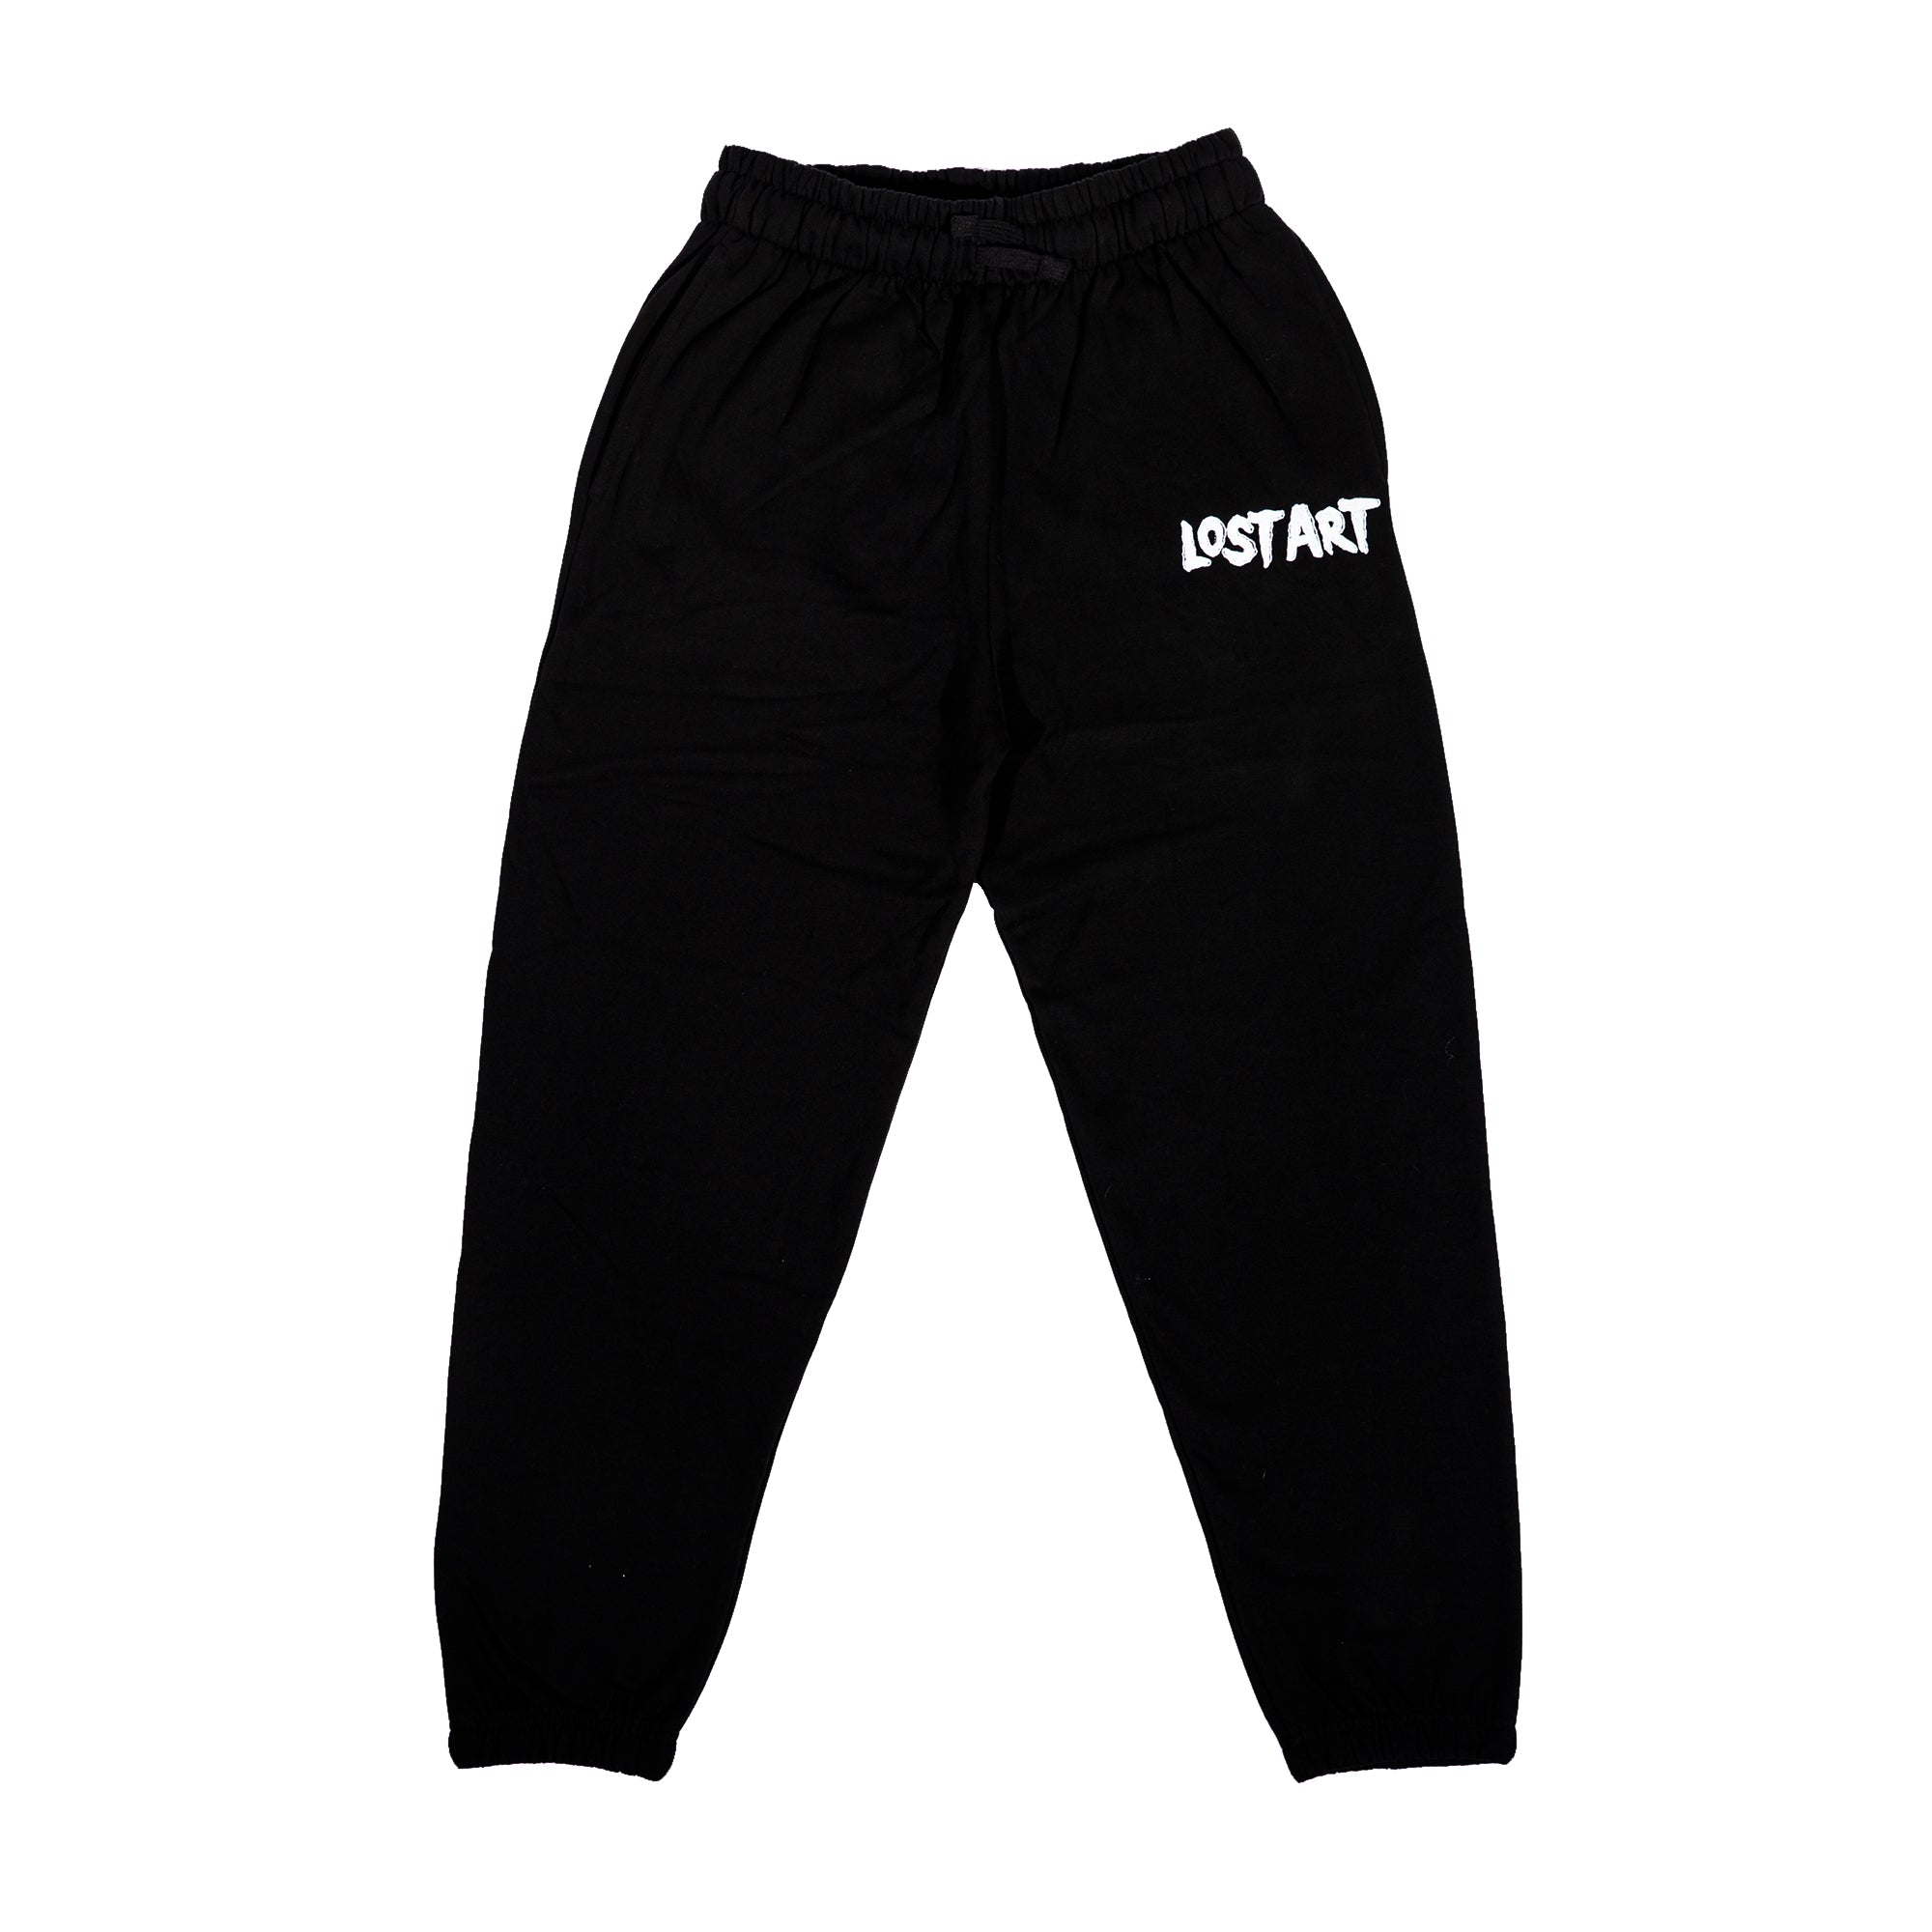 Lost Art -</br>Munster Embroidered Jogger</br>Black